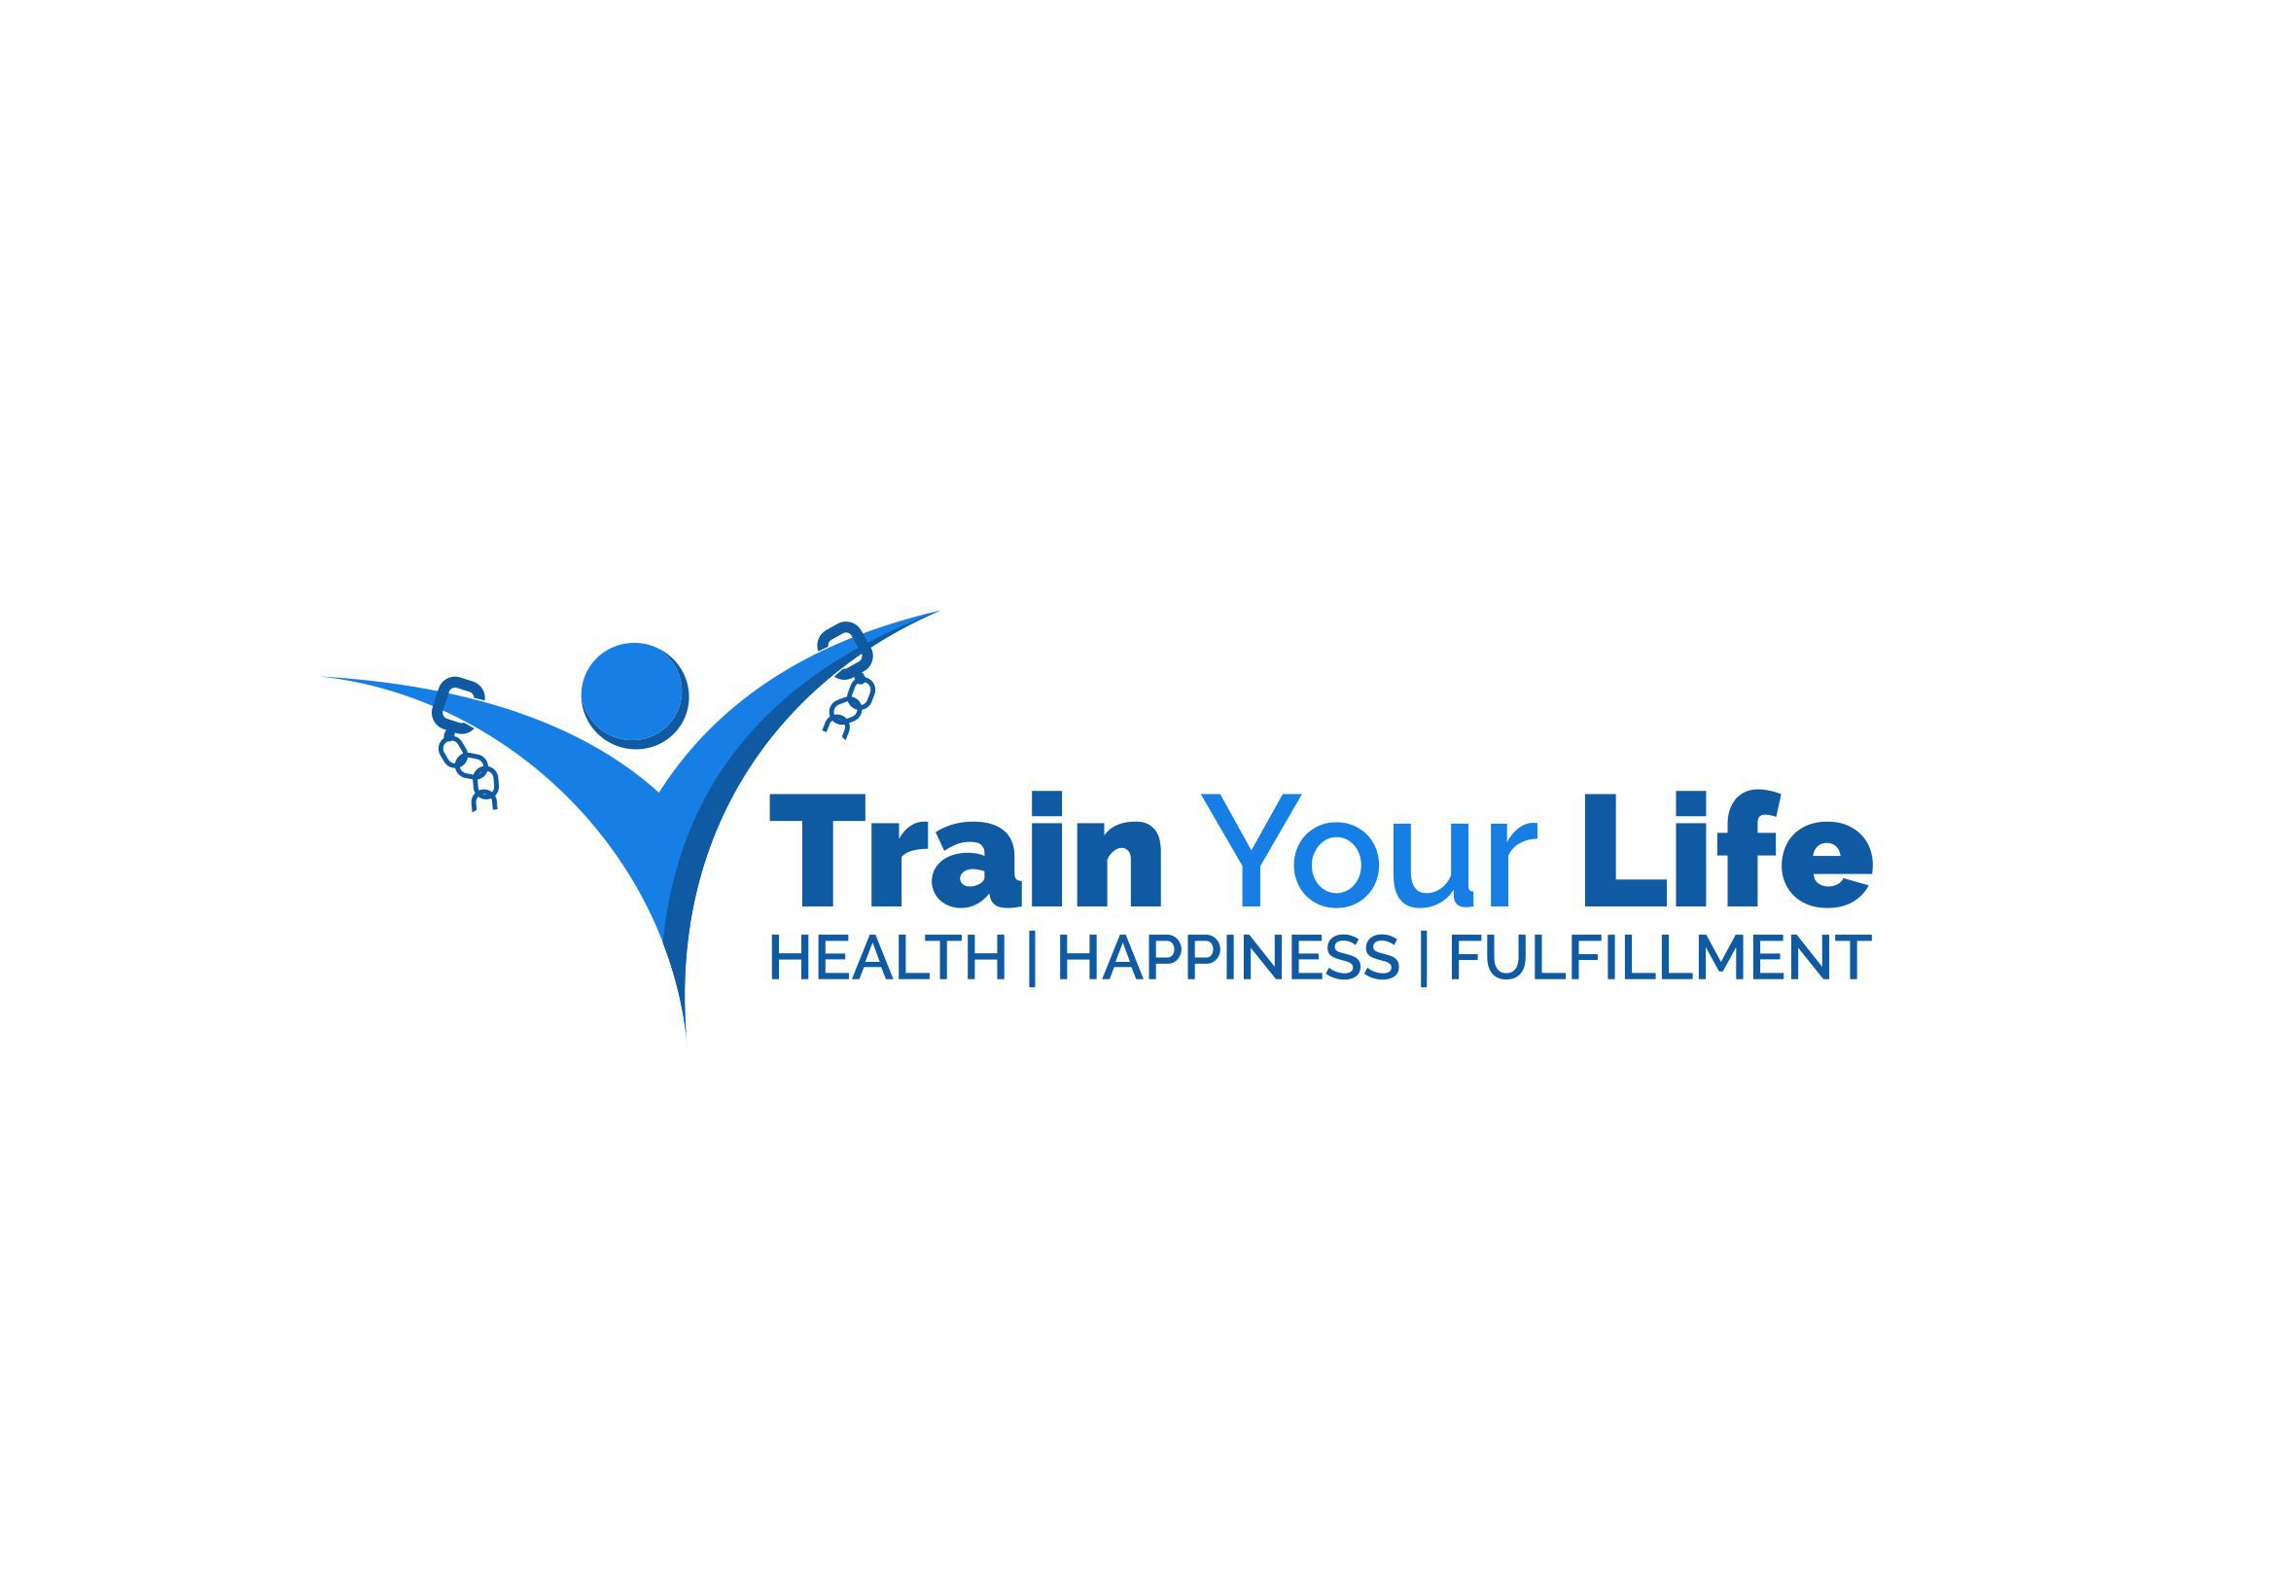 Train Your Life